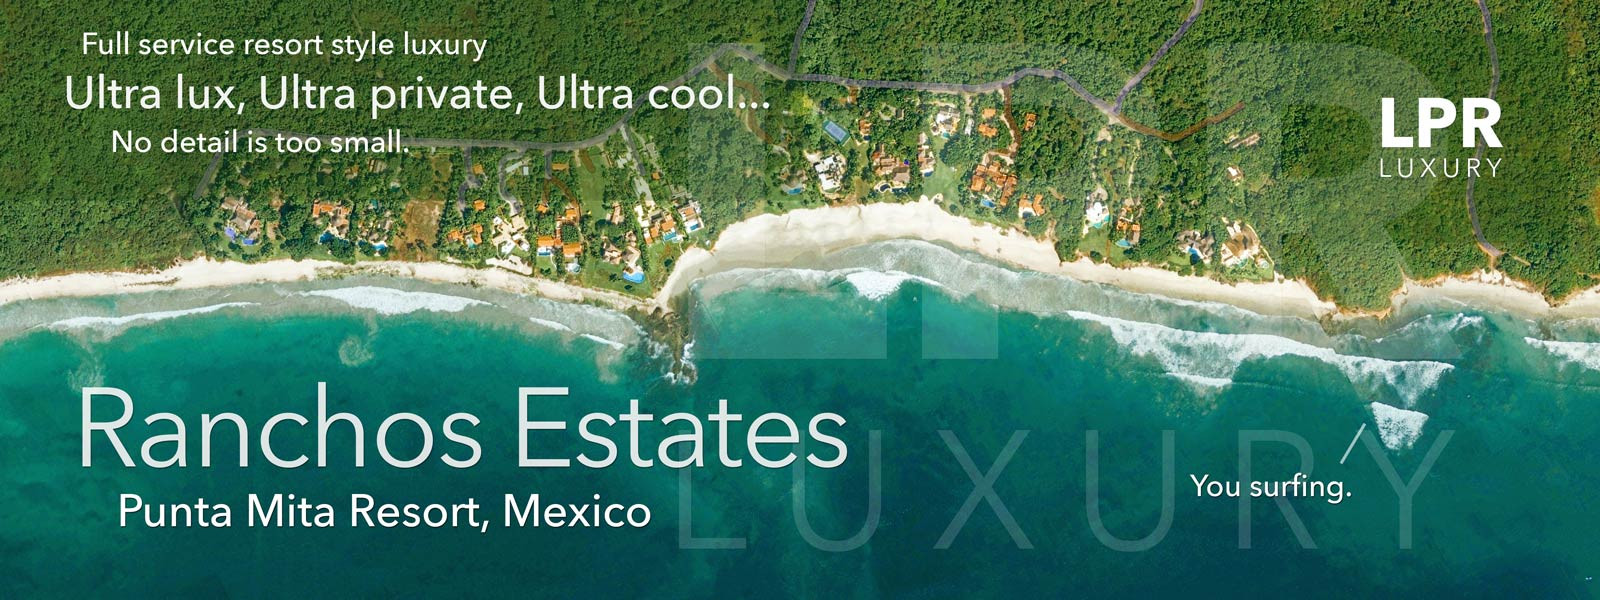 punta mita luxury vacation rentalslpr luxury